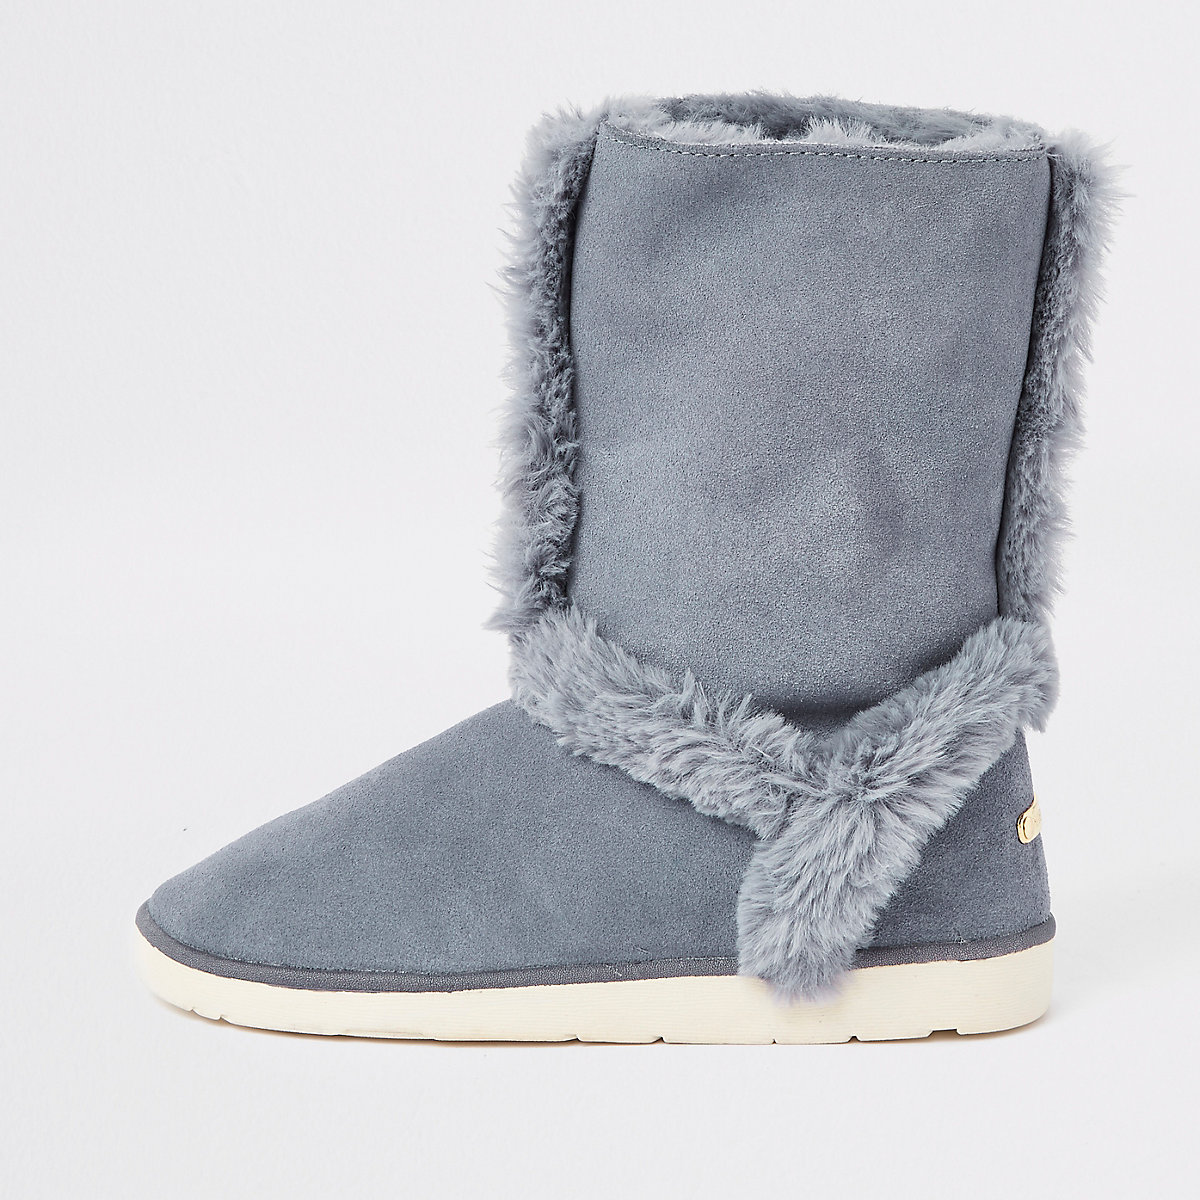 Grey suede faux fur lined boots